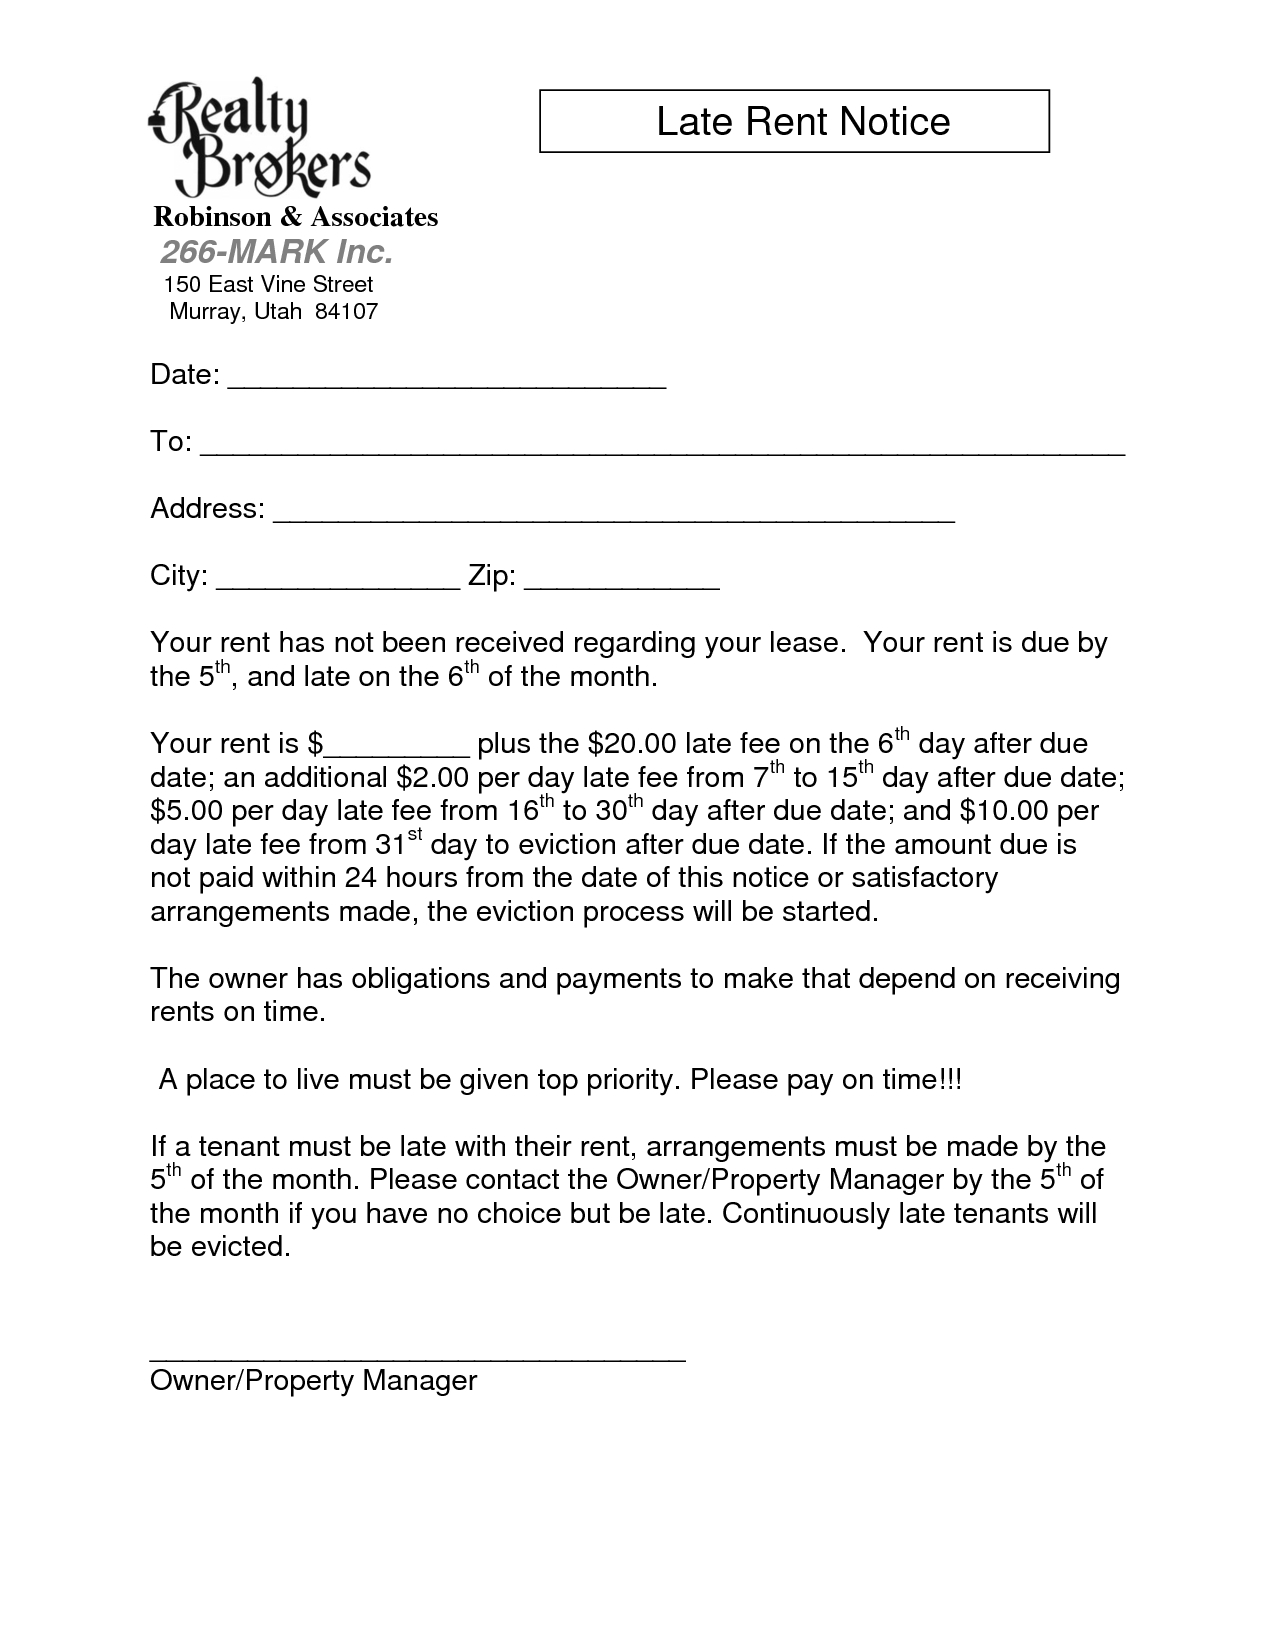 Late Rent Notice Template Images - Sample Late Rent Notice - Free Printable Late Rent Notice